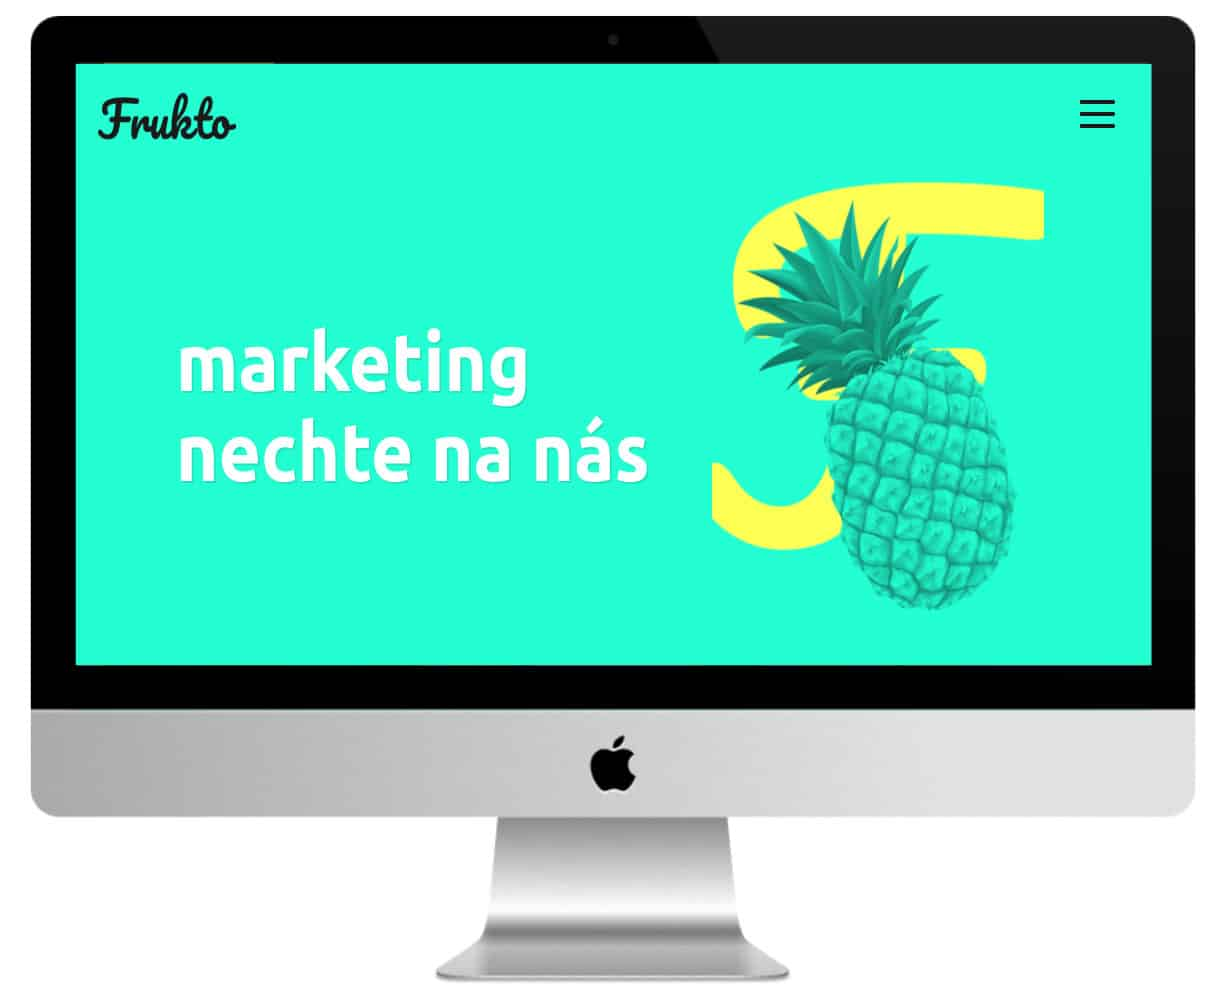 siteweb couleur turquoise